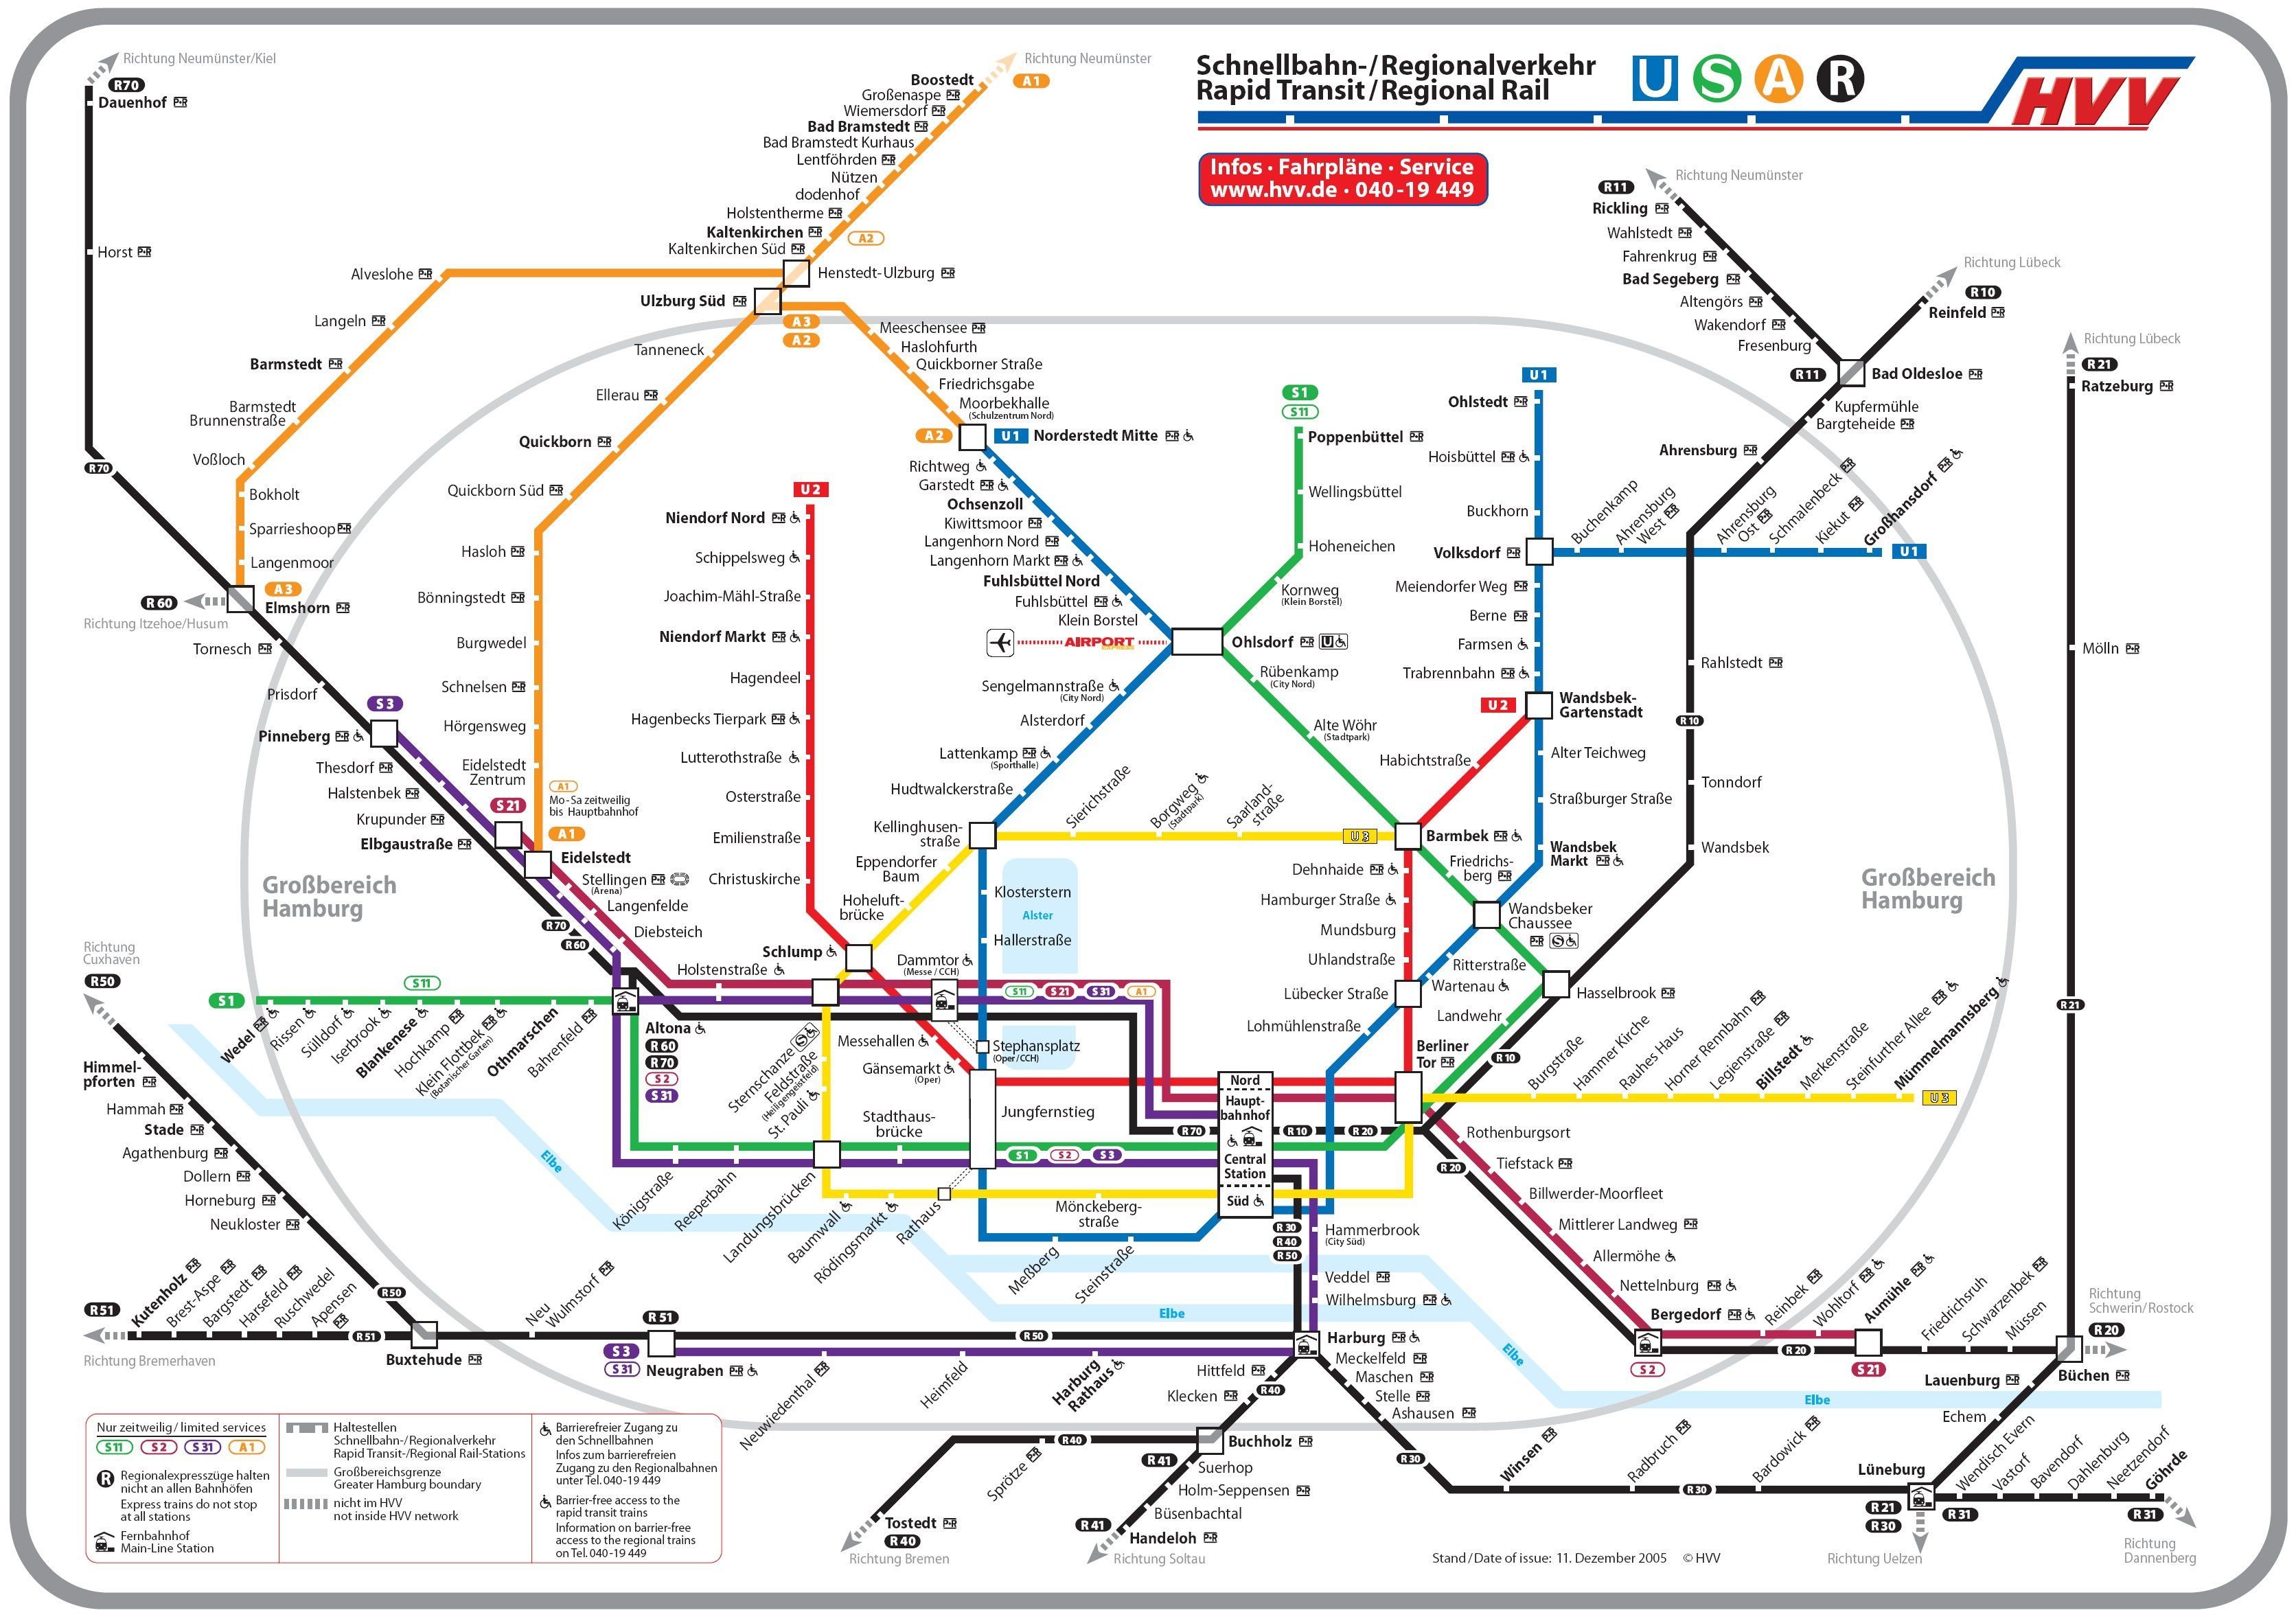 Hamburg Subway Map.Hamburg Bahn Map Print As Poster Rainy Day Activities In 2019